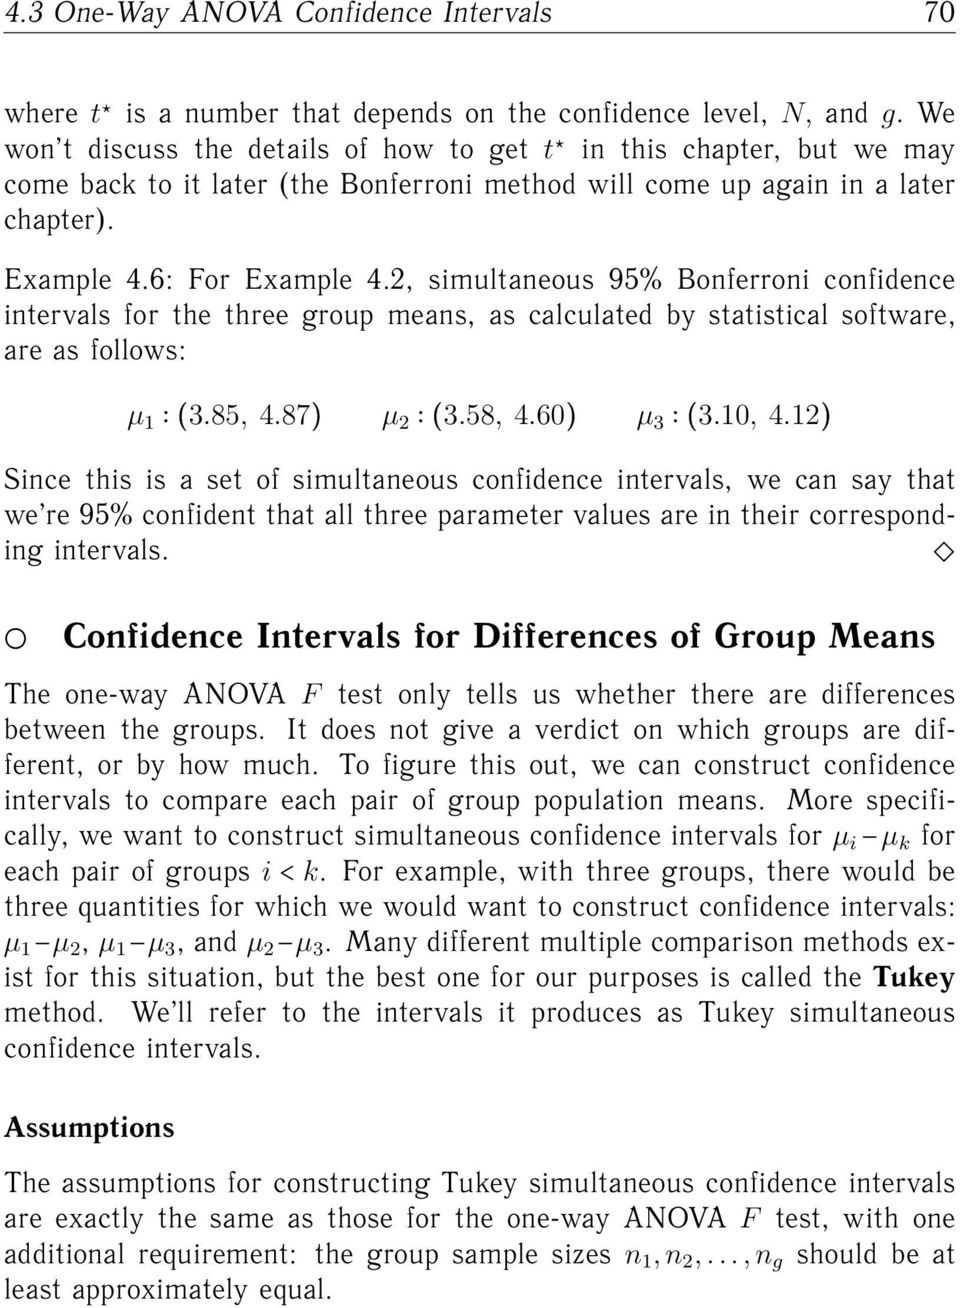 2, simultaneous 95% Bonferroni confidence intervals for the three group means, as calculated by statistical software, are as follows: µ 1 ˆ3.85, 4.87 µ 2 ˆ3.58, 4.60 µ 3 ˆ3.10, 4.